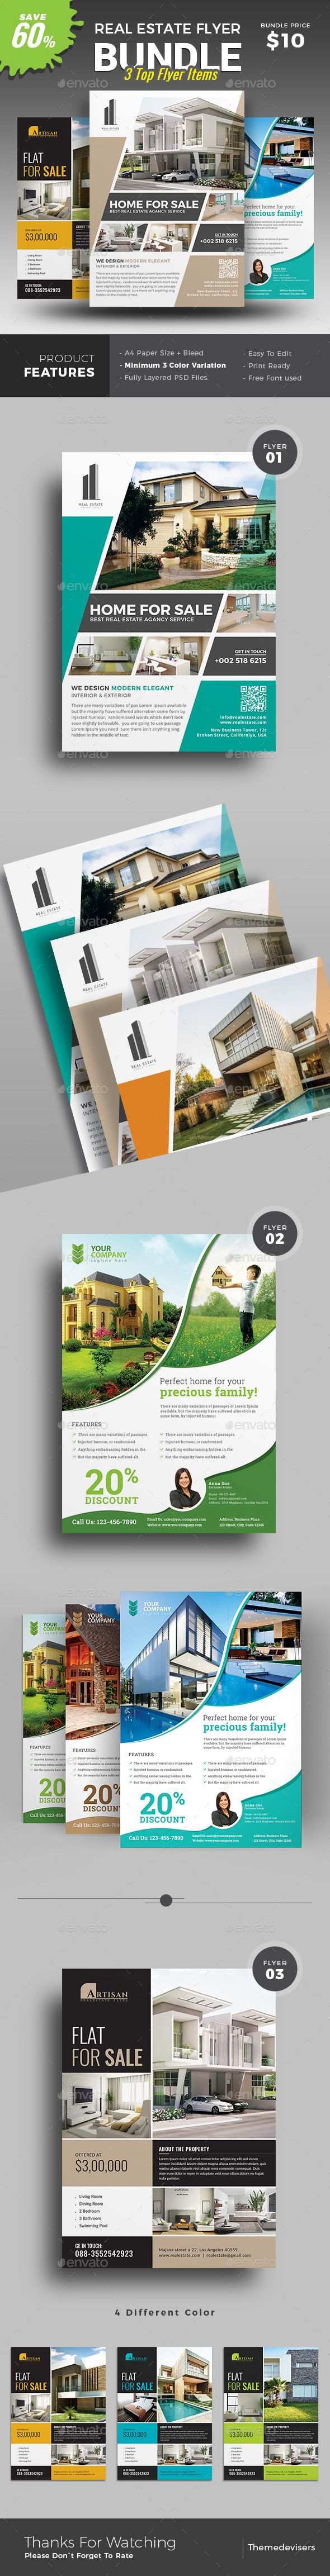 best ideas about real estate flyers real estate real estate flyer commerce flyers here